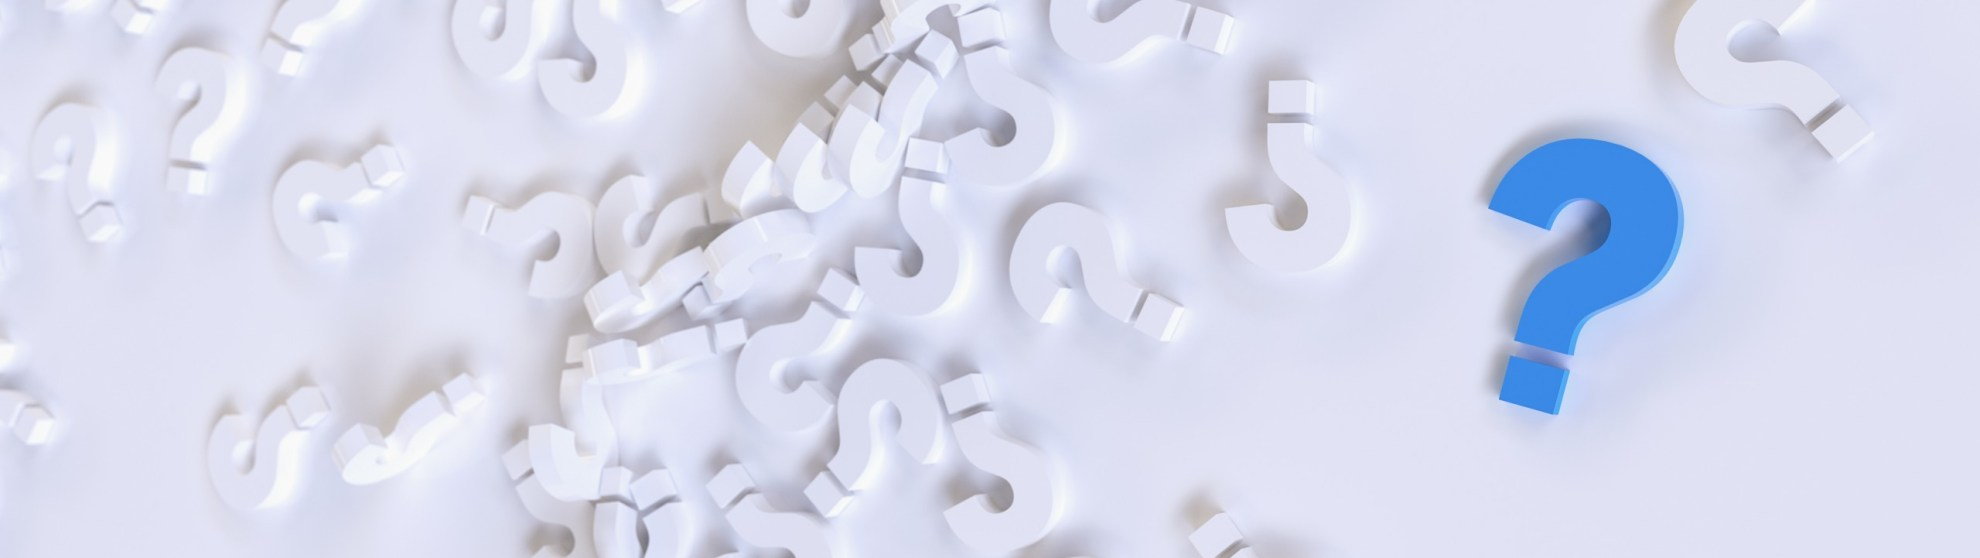 Question Marks Scattered on a White Background with a Single Blue Question Mark to the Right